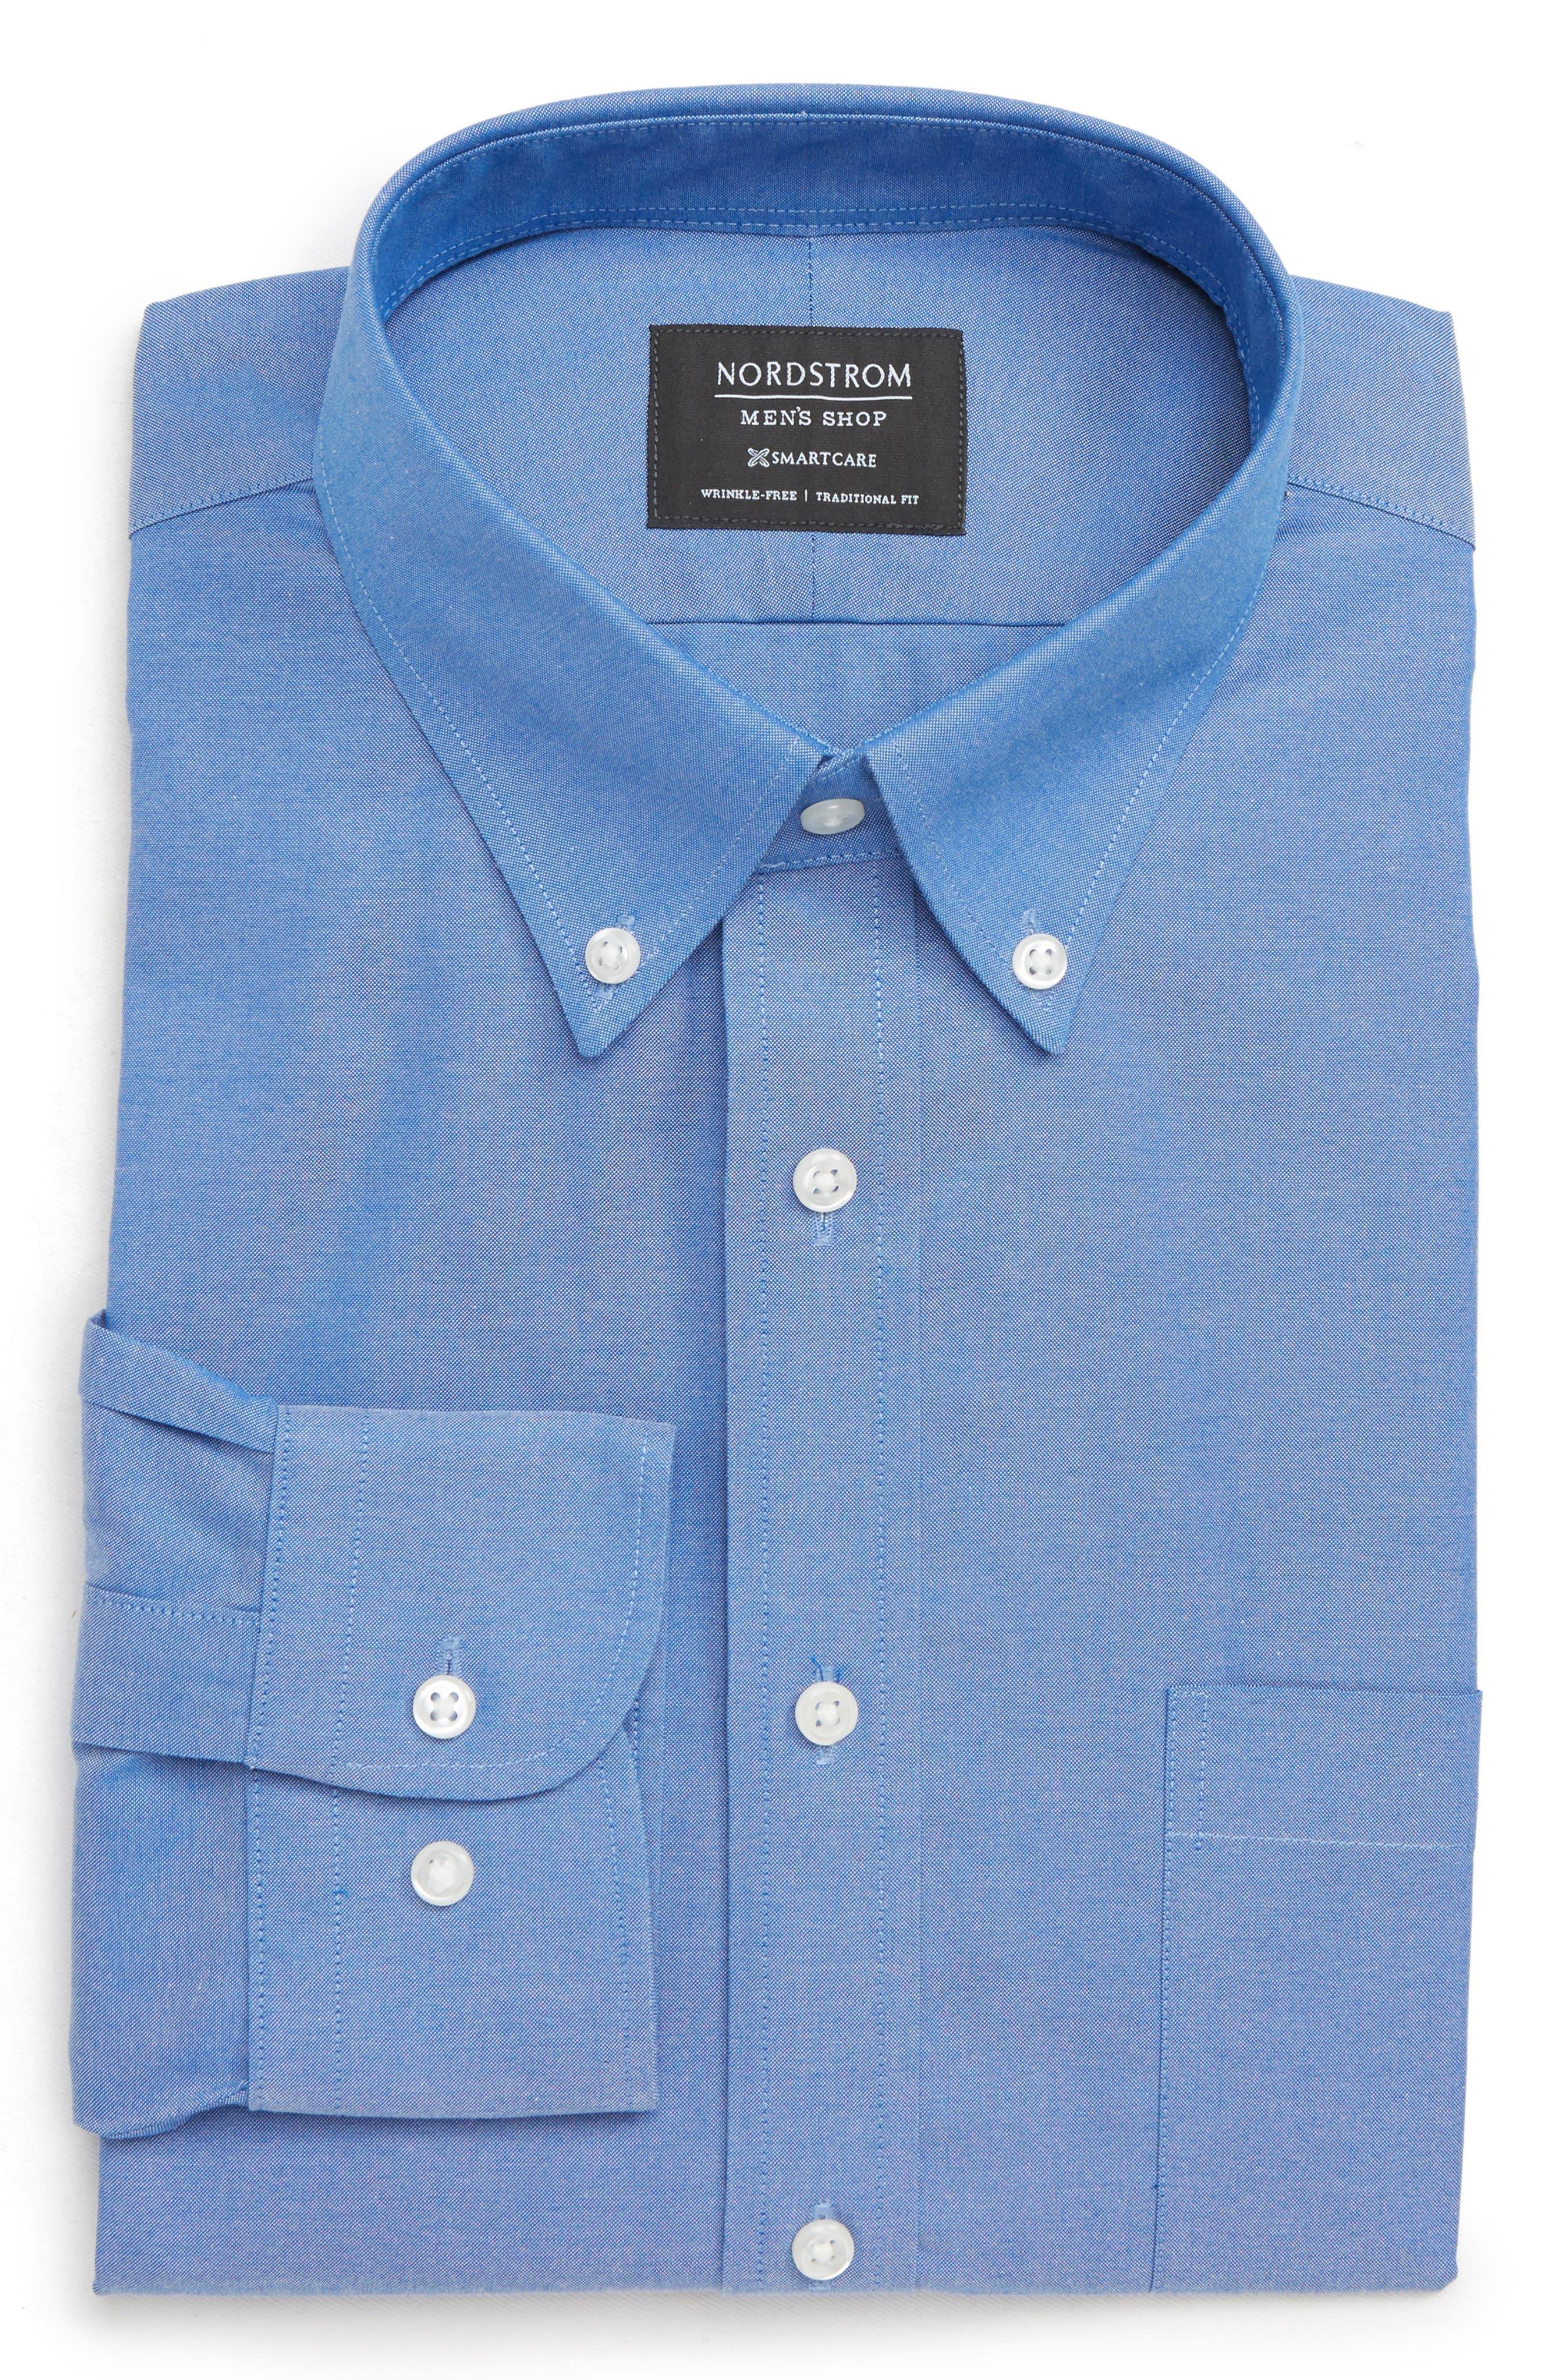 Nordstrom Shop Smartcare(TM) Traditional Fit Pinpoint Dress Shirt, 5 32/33 - Blue